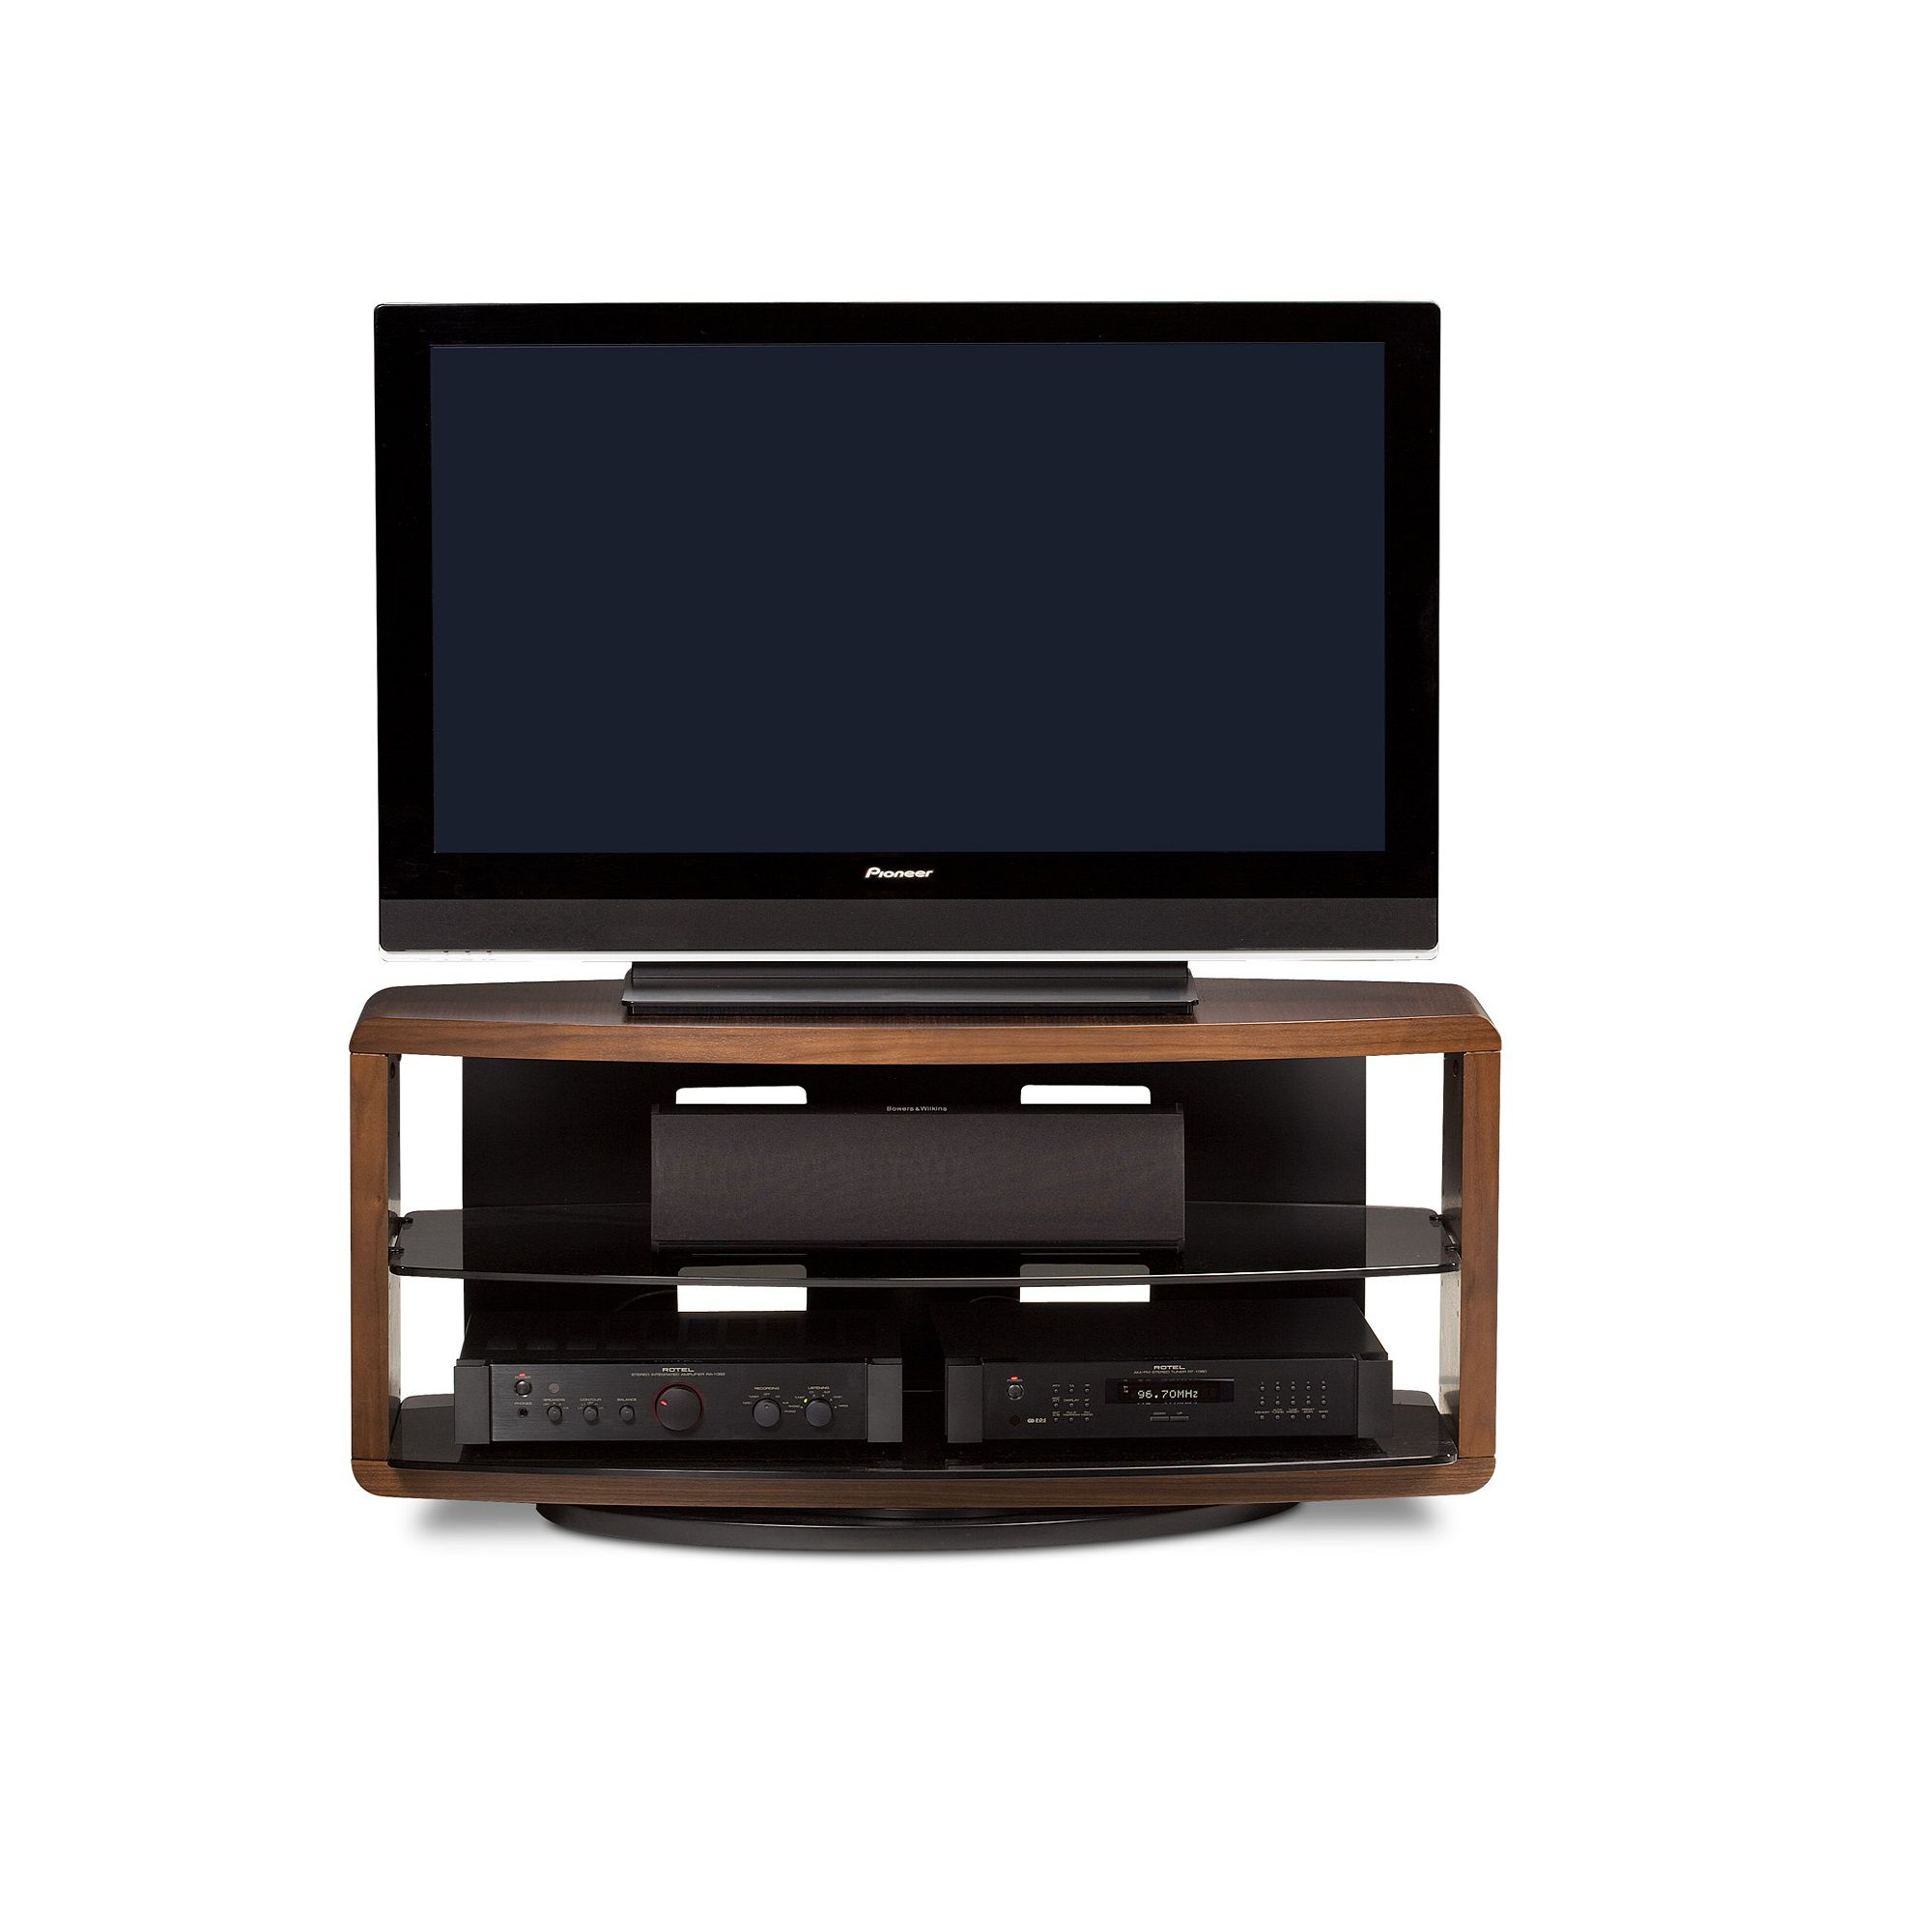 BDI Valera 9724 TV Stand up to 50'' TV's - Chocolate Walnut at Tesco Direct